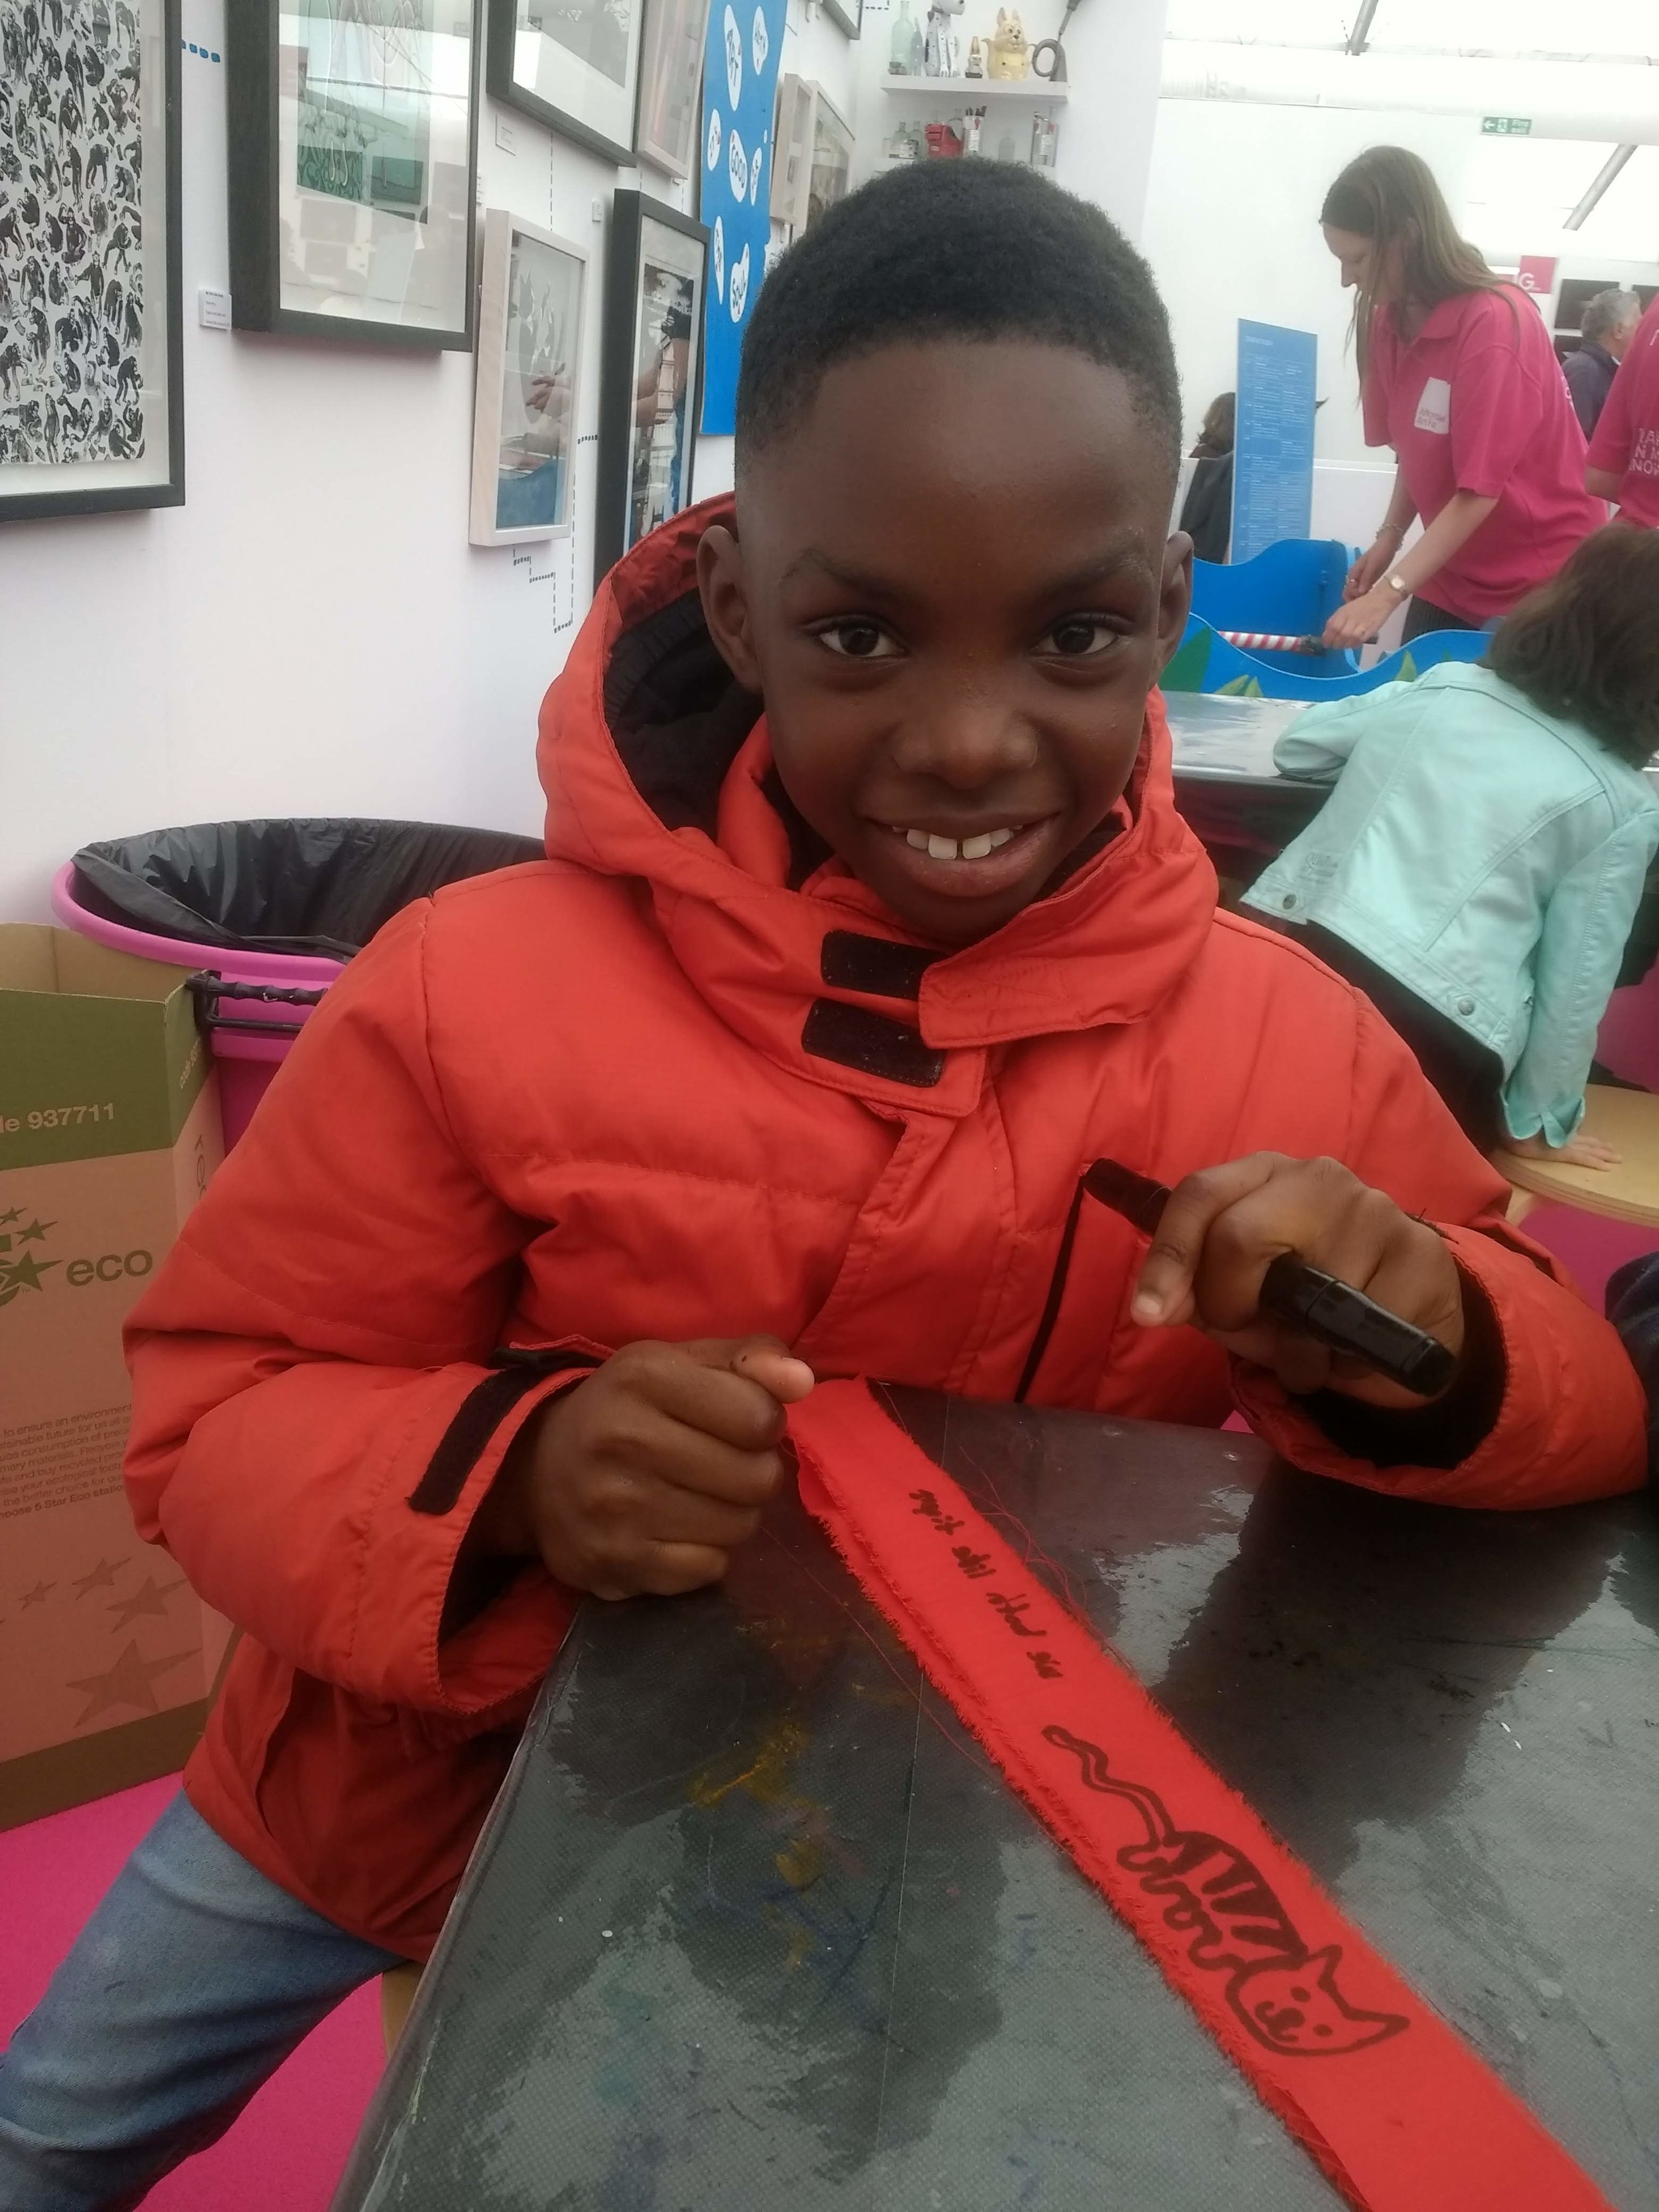 A little boy smiling and pointing to his red cloth